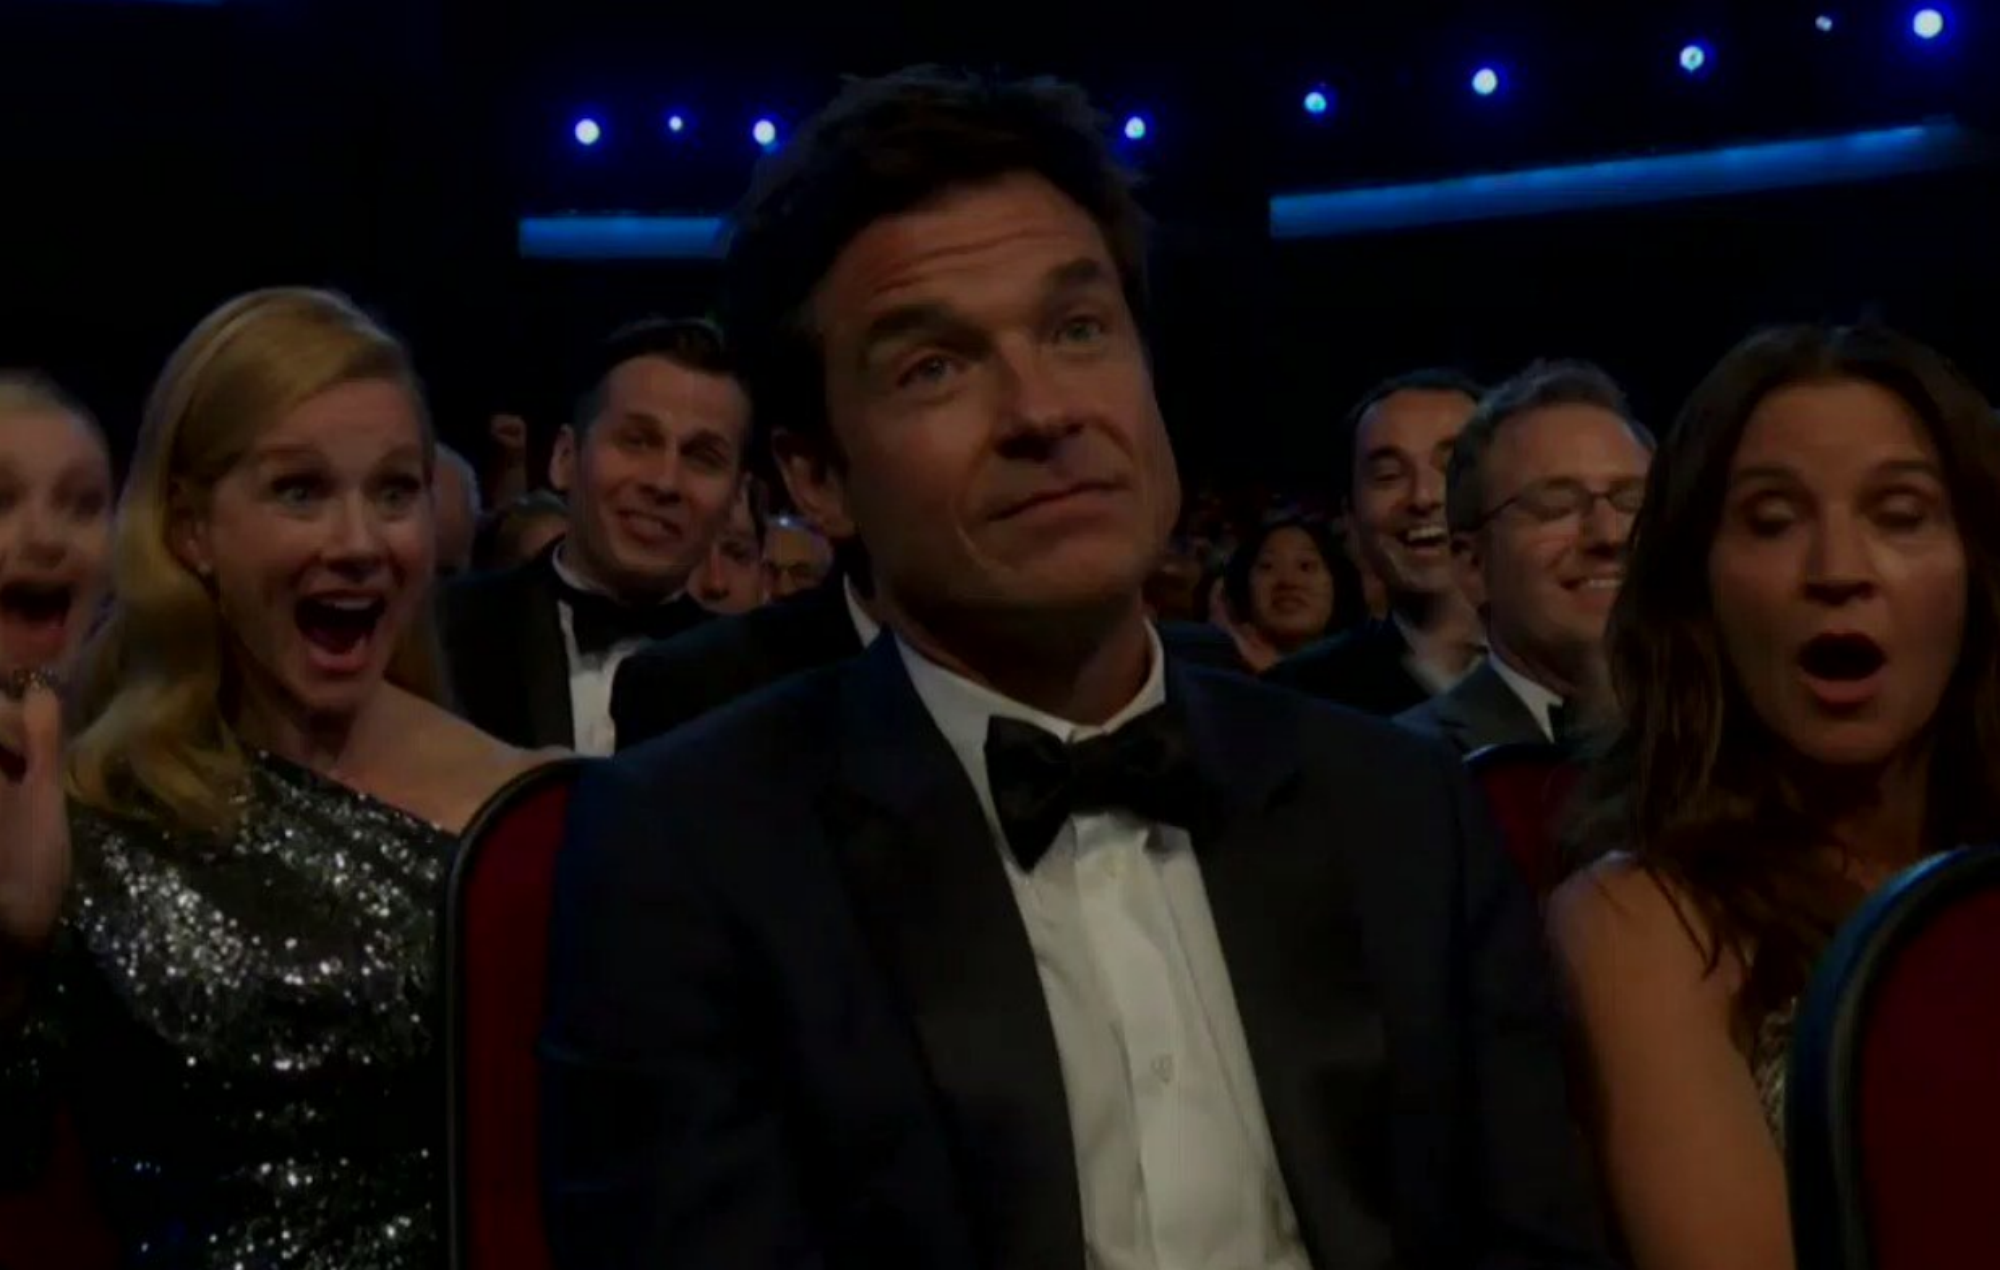 Jason Bateman gets the meme treatment after brilliant reaction to Emmys win